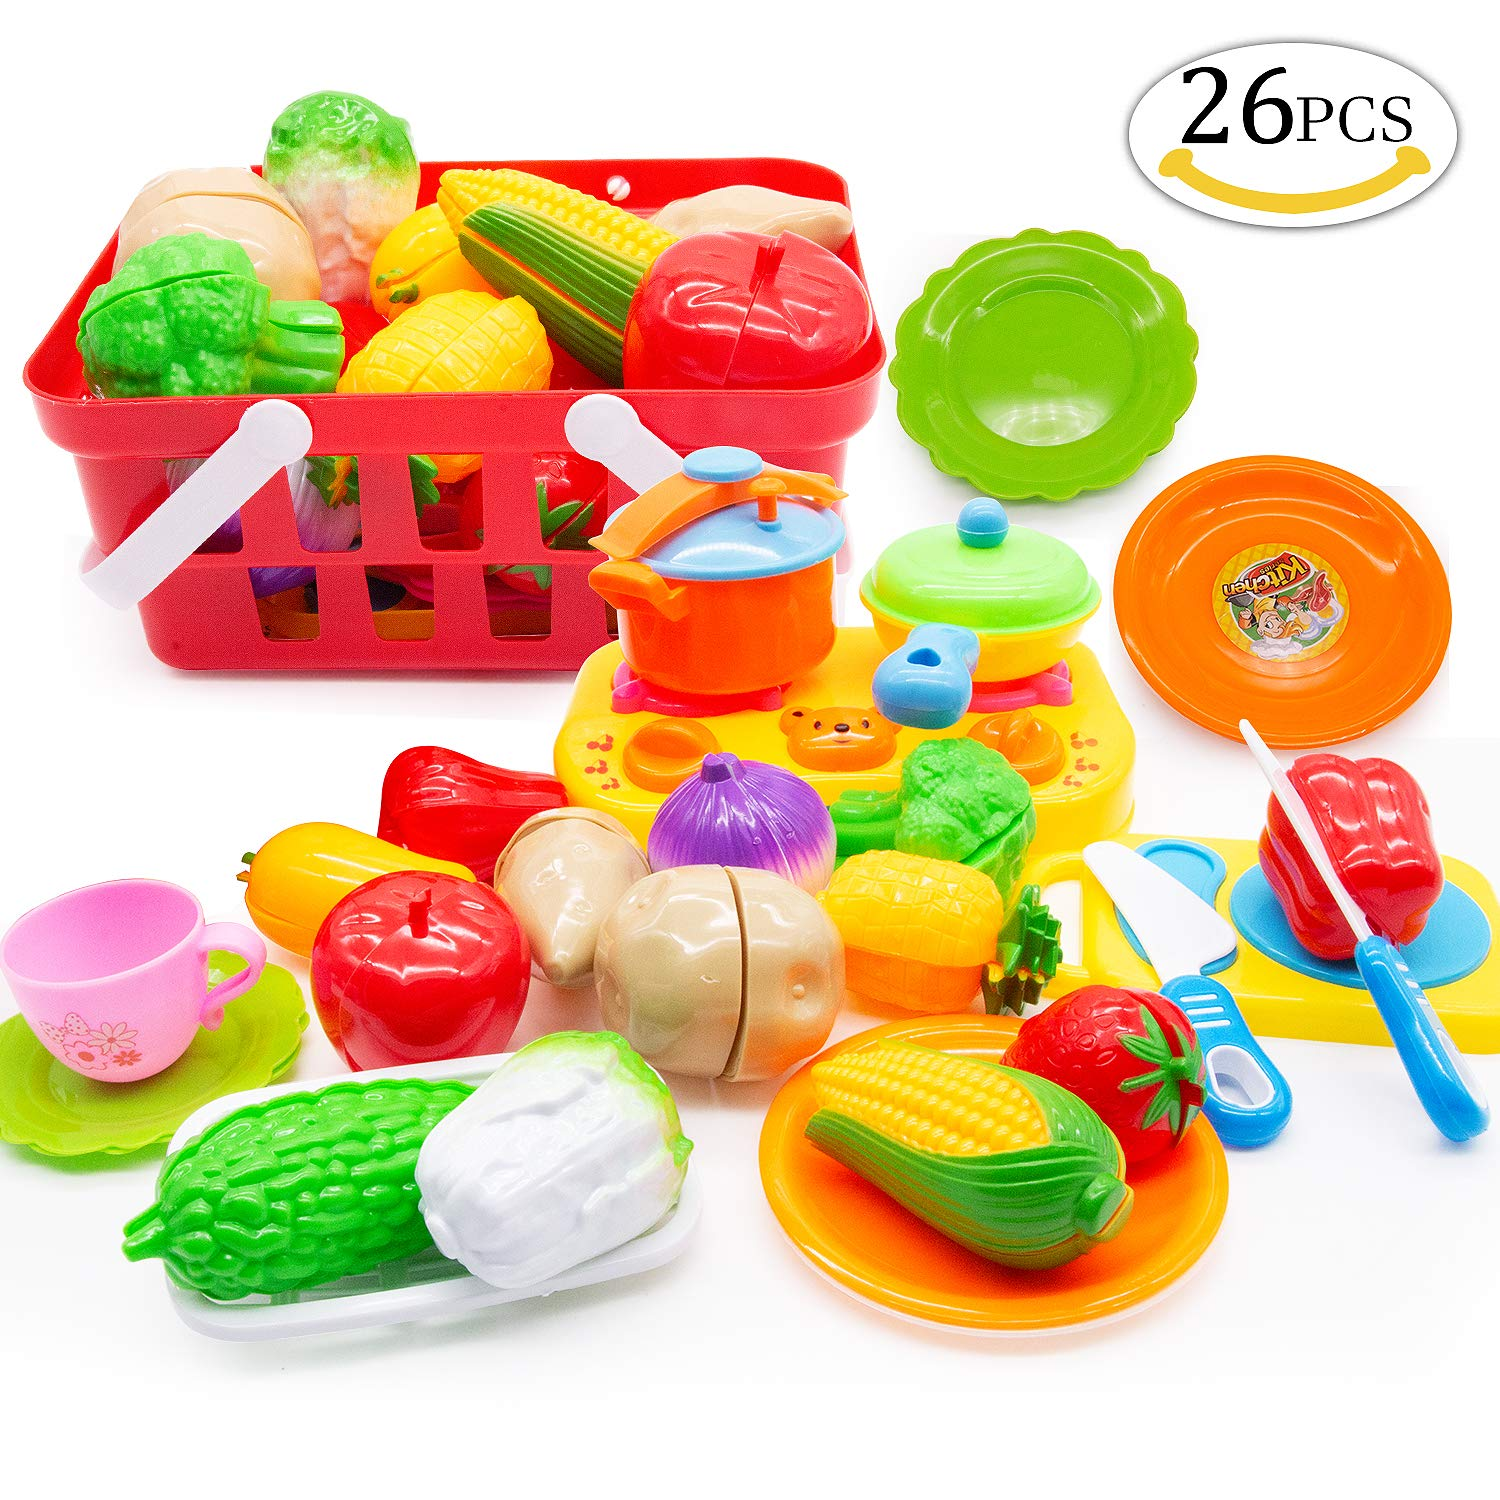 26pcs Cutting Food Toys, Yansion Fruits Vegetable Food Cutting Set and Kitchen Cooking kits Fun Pretend Food Play Set Toys Cookware Accessory for Kids Toddlers Child Early Age Development Educational Learning Resources Christmas Gifts